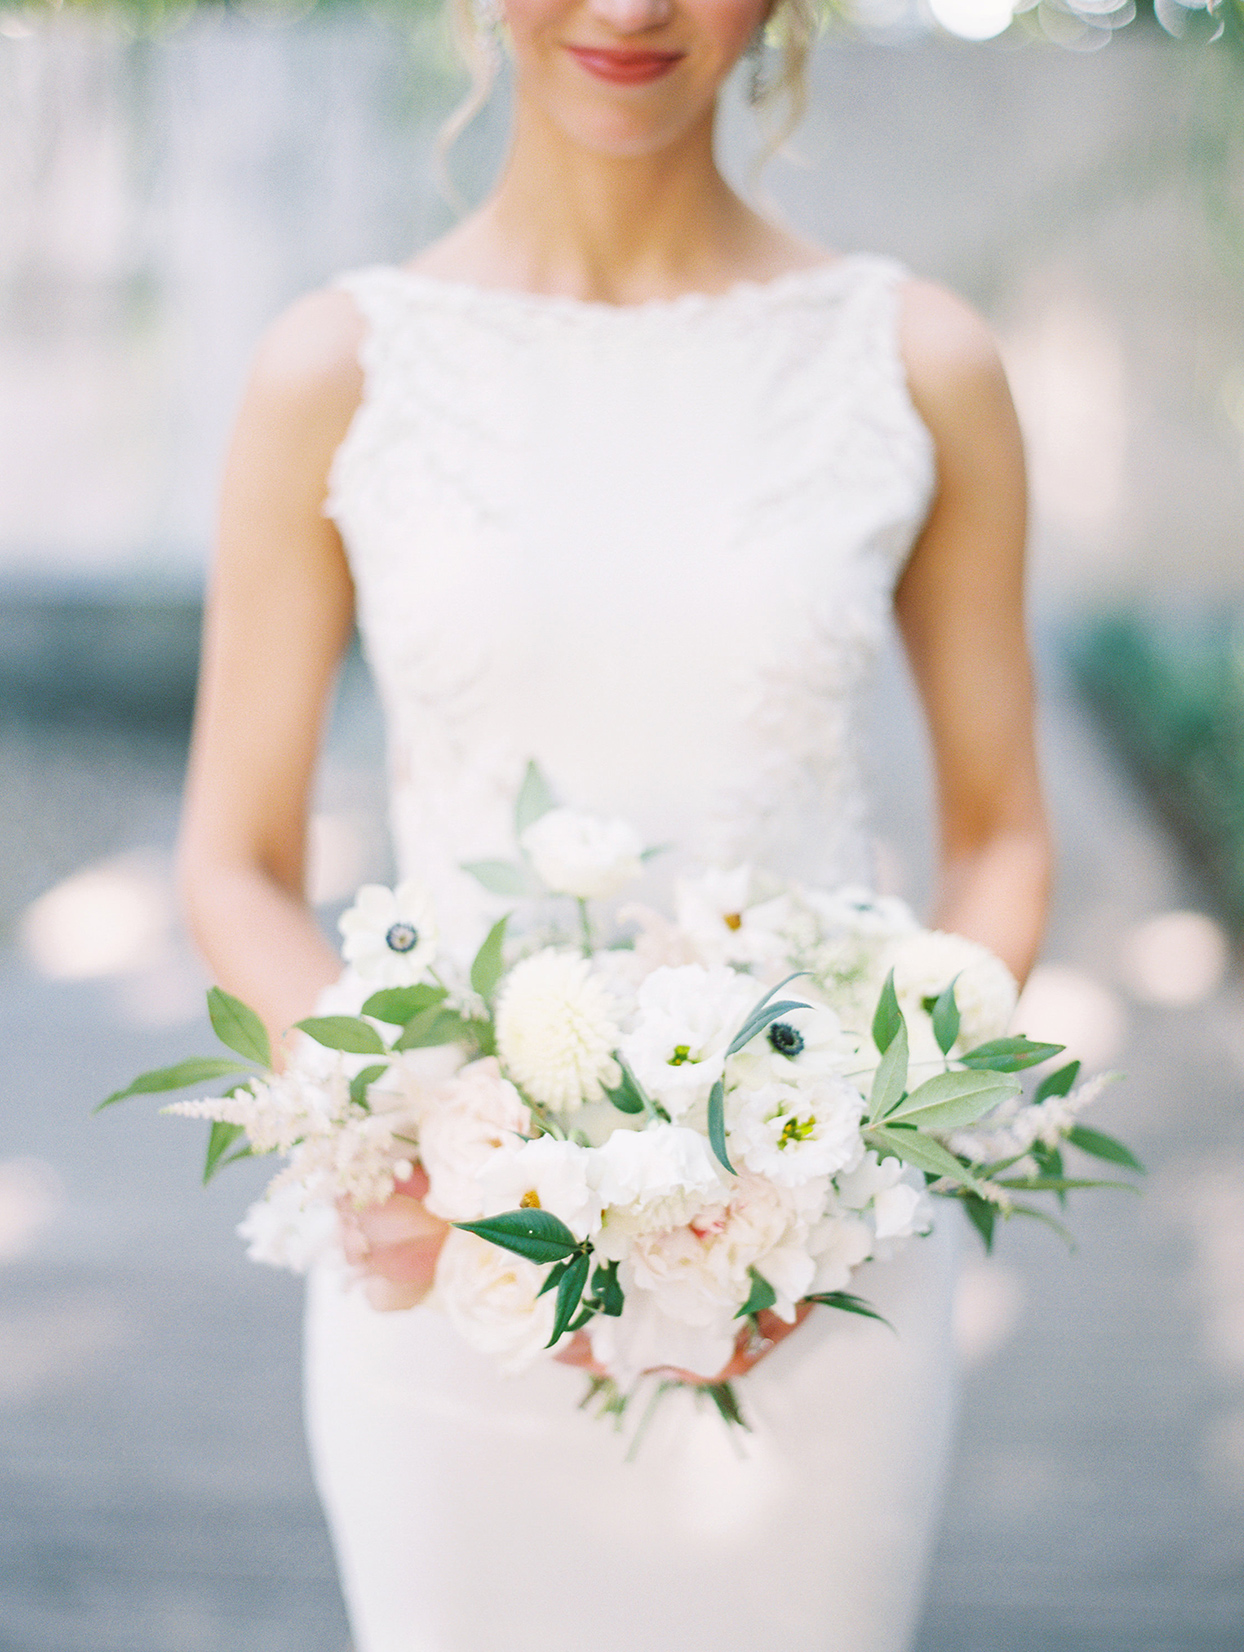 bride holding simple white floral bouquet